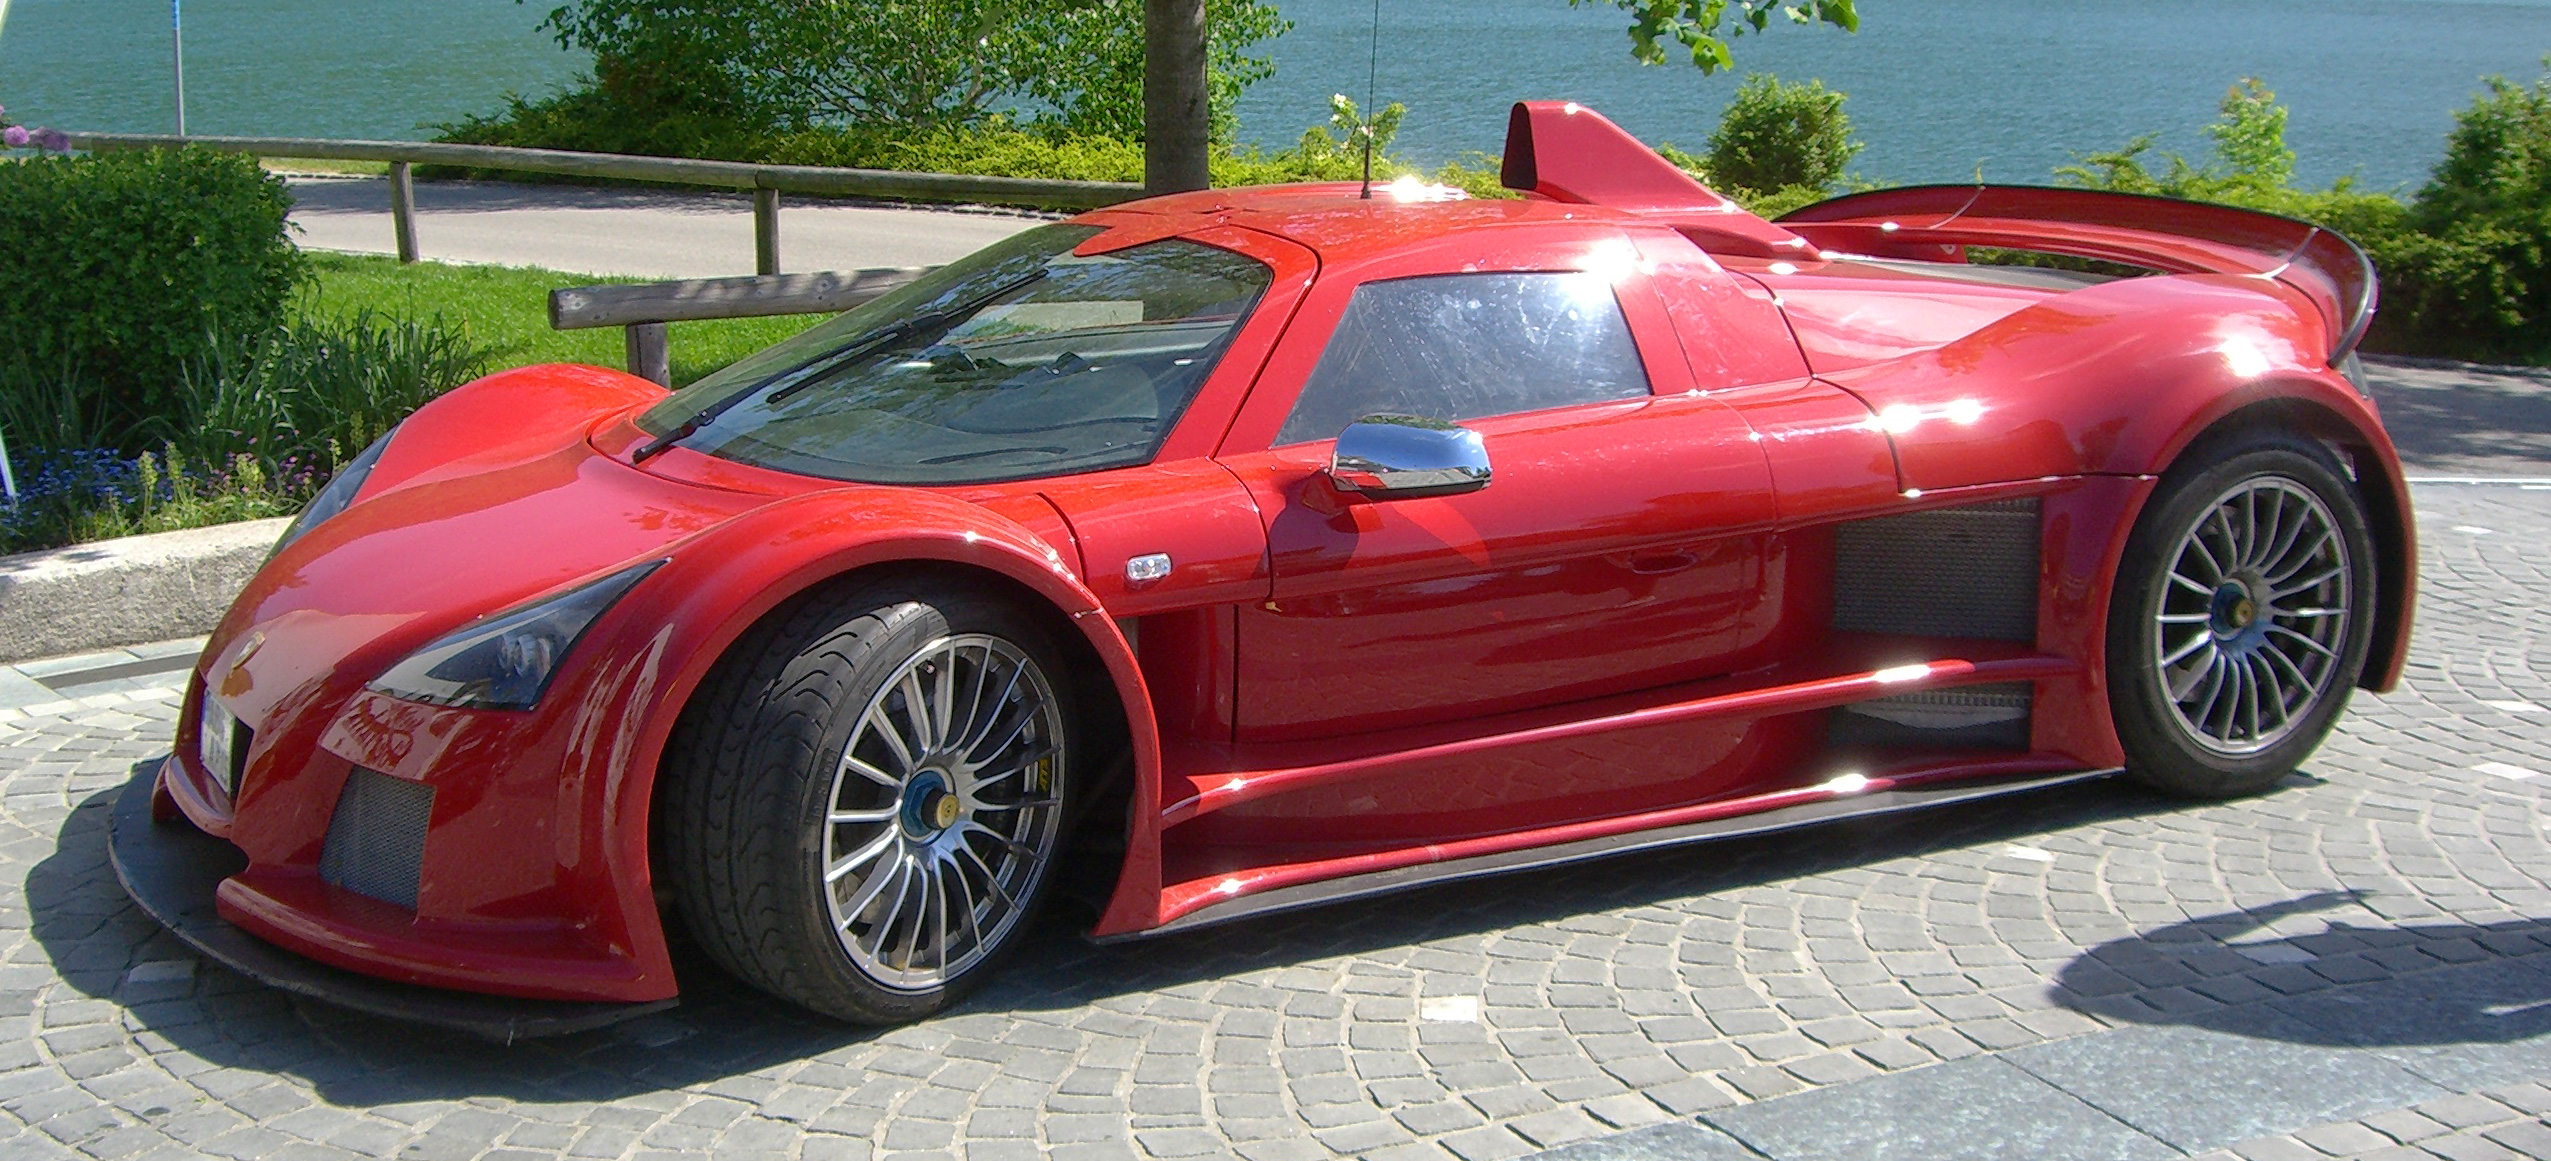 Gumpert Apollo speed photo 105615